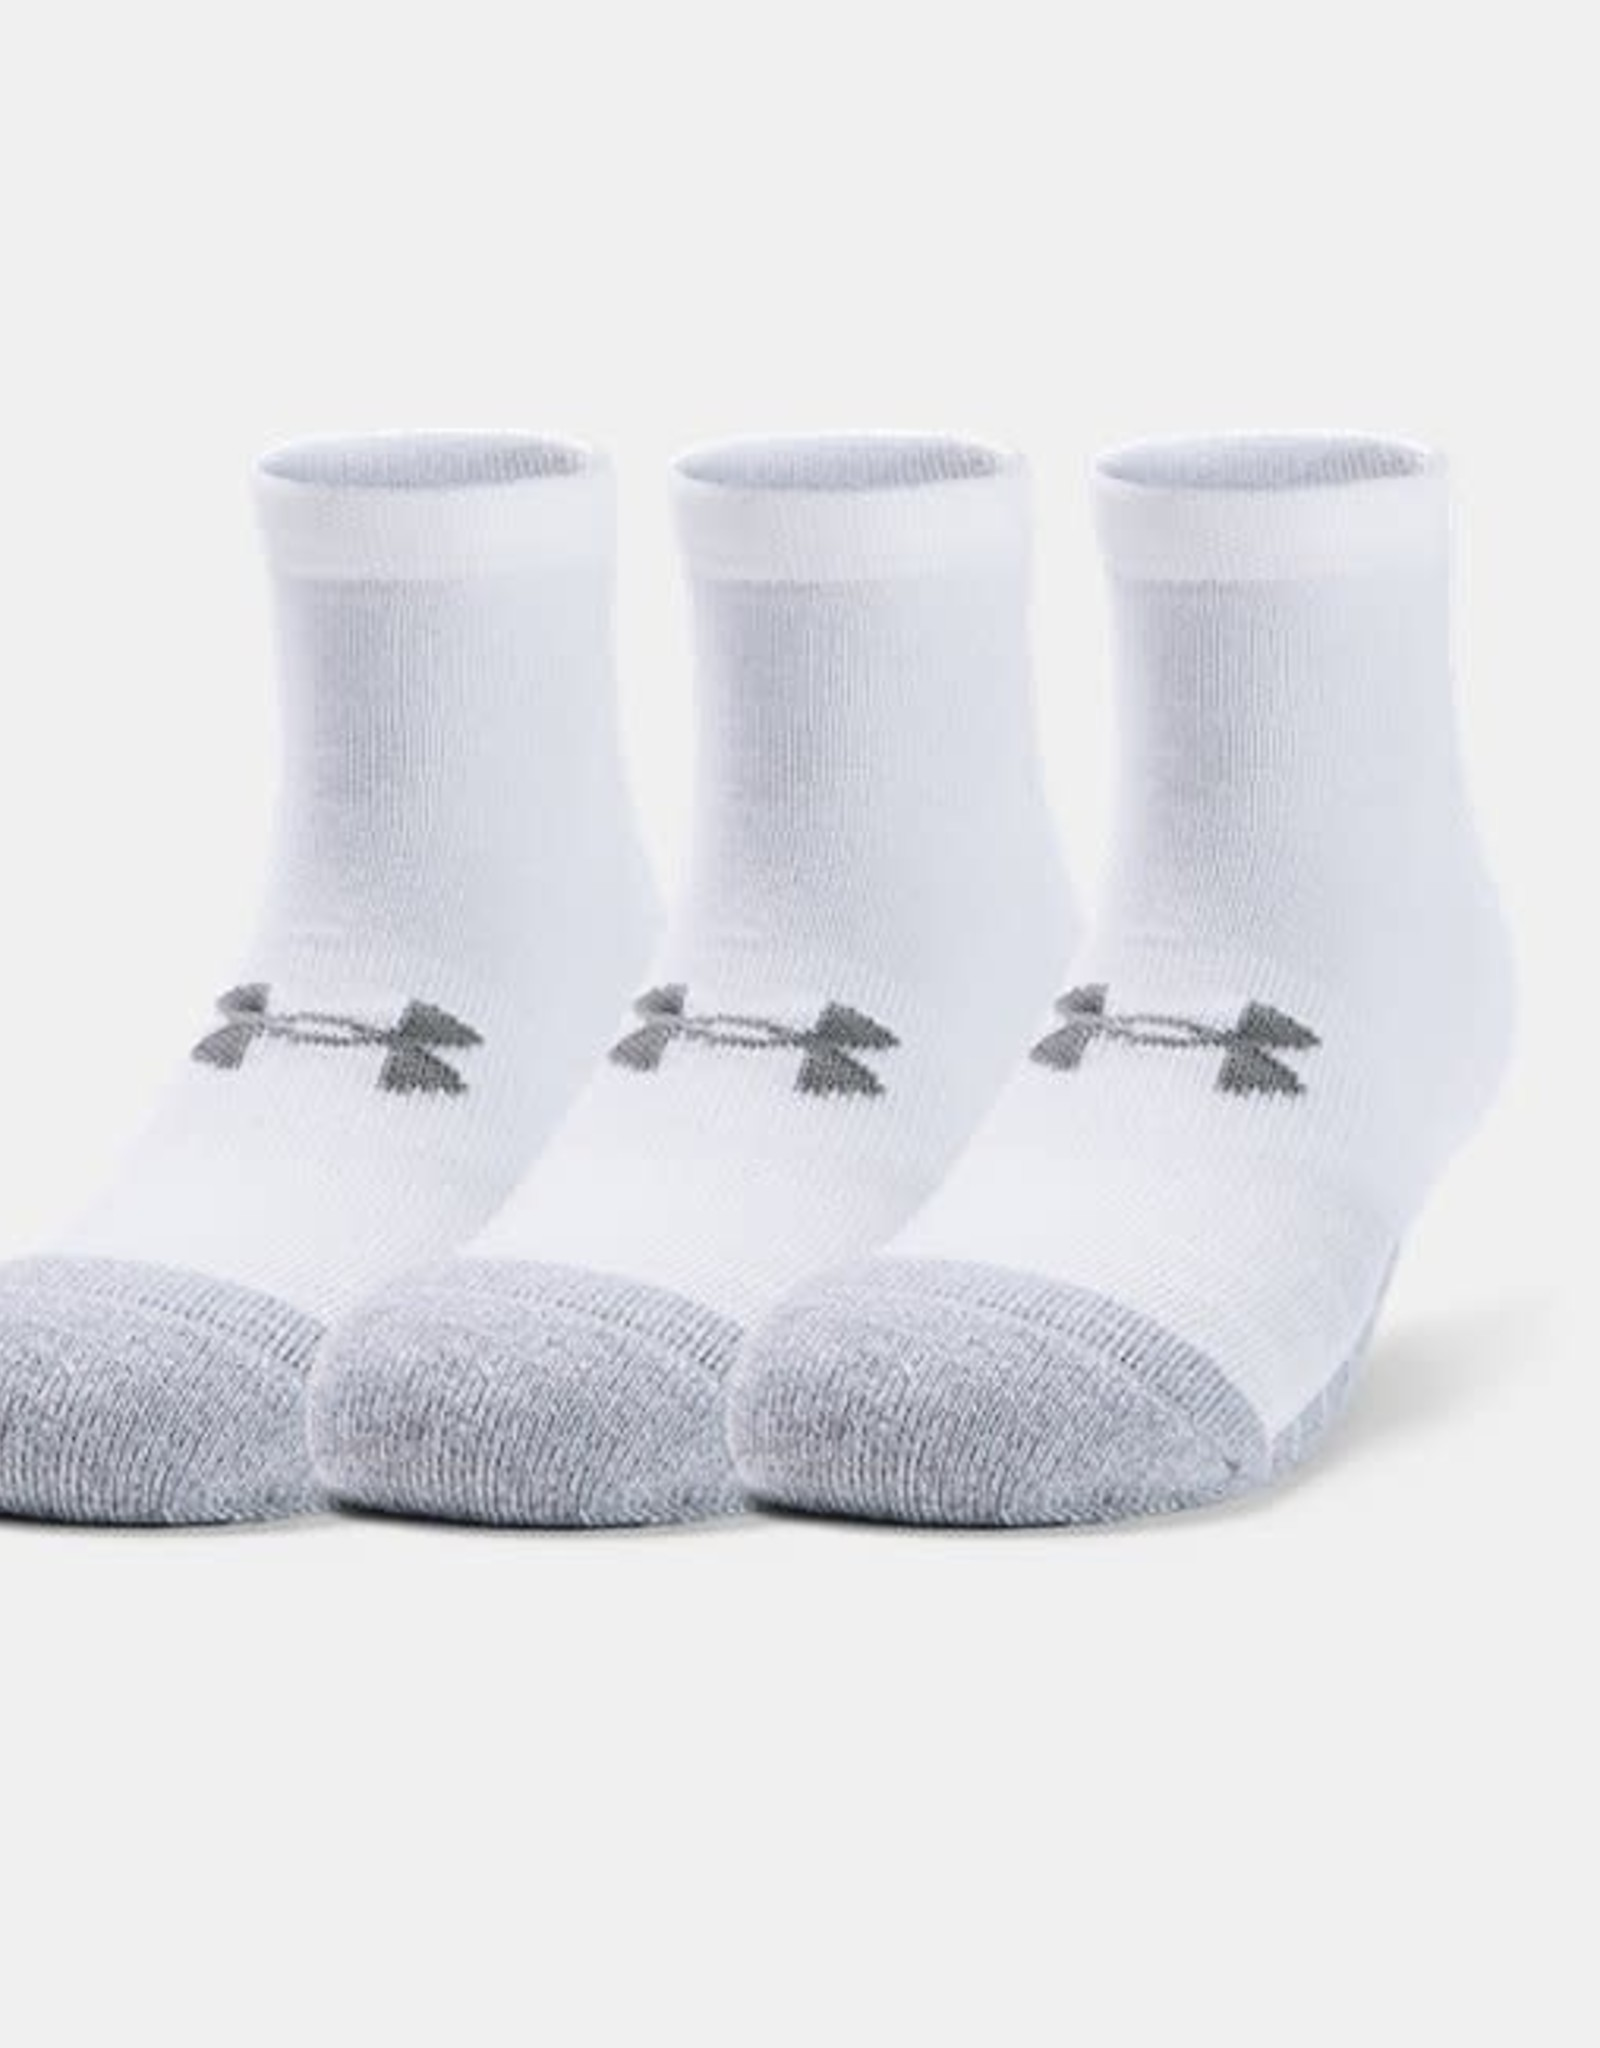 Under Armour Heatgear locut 3 pack - white